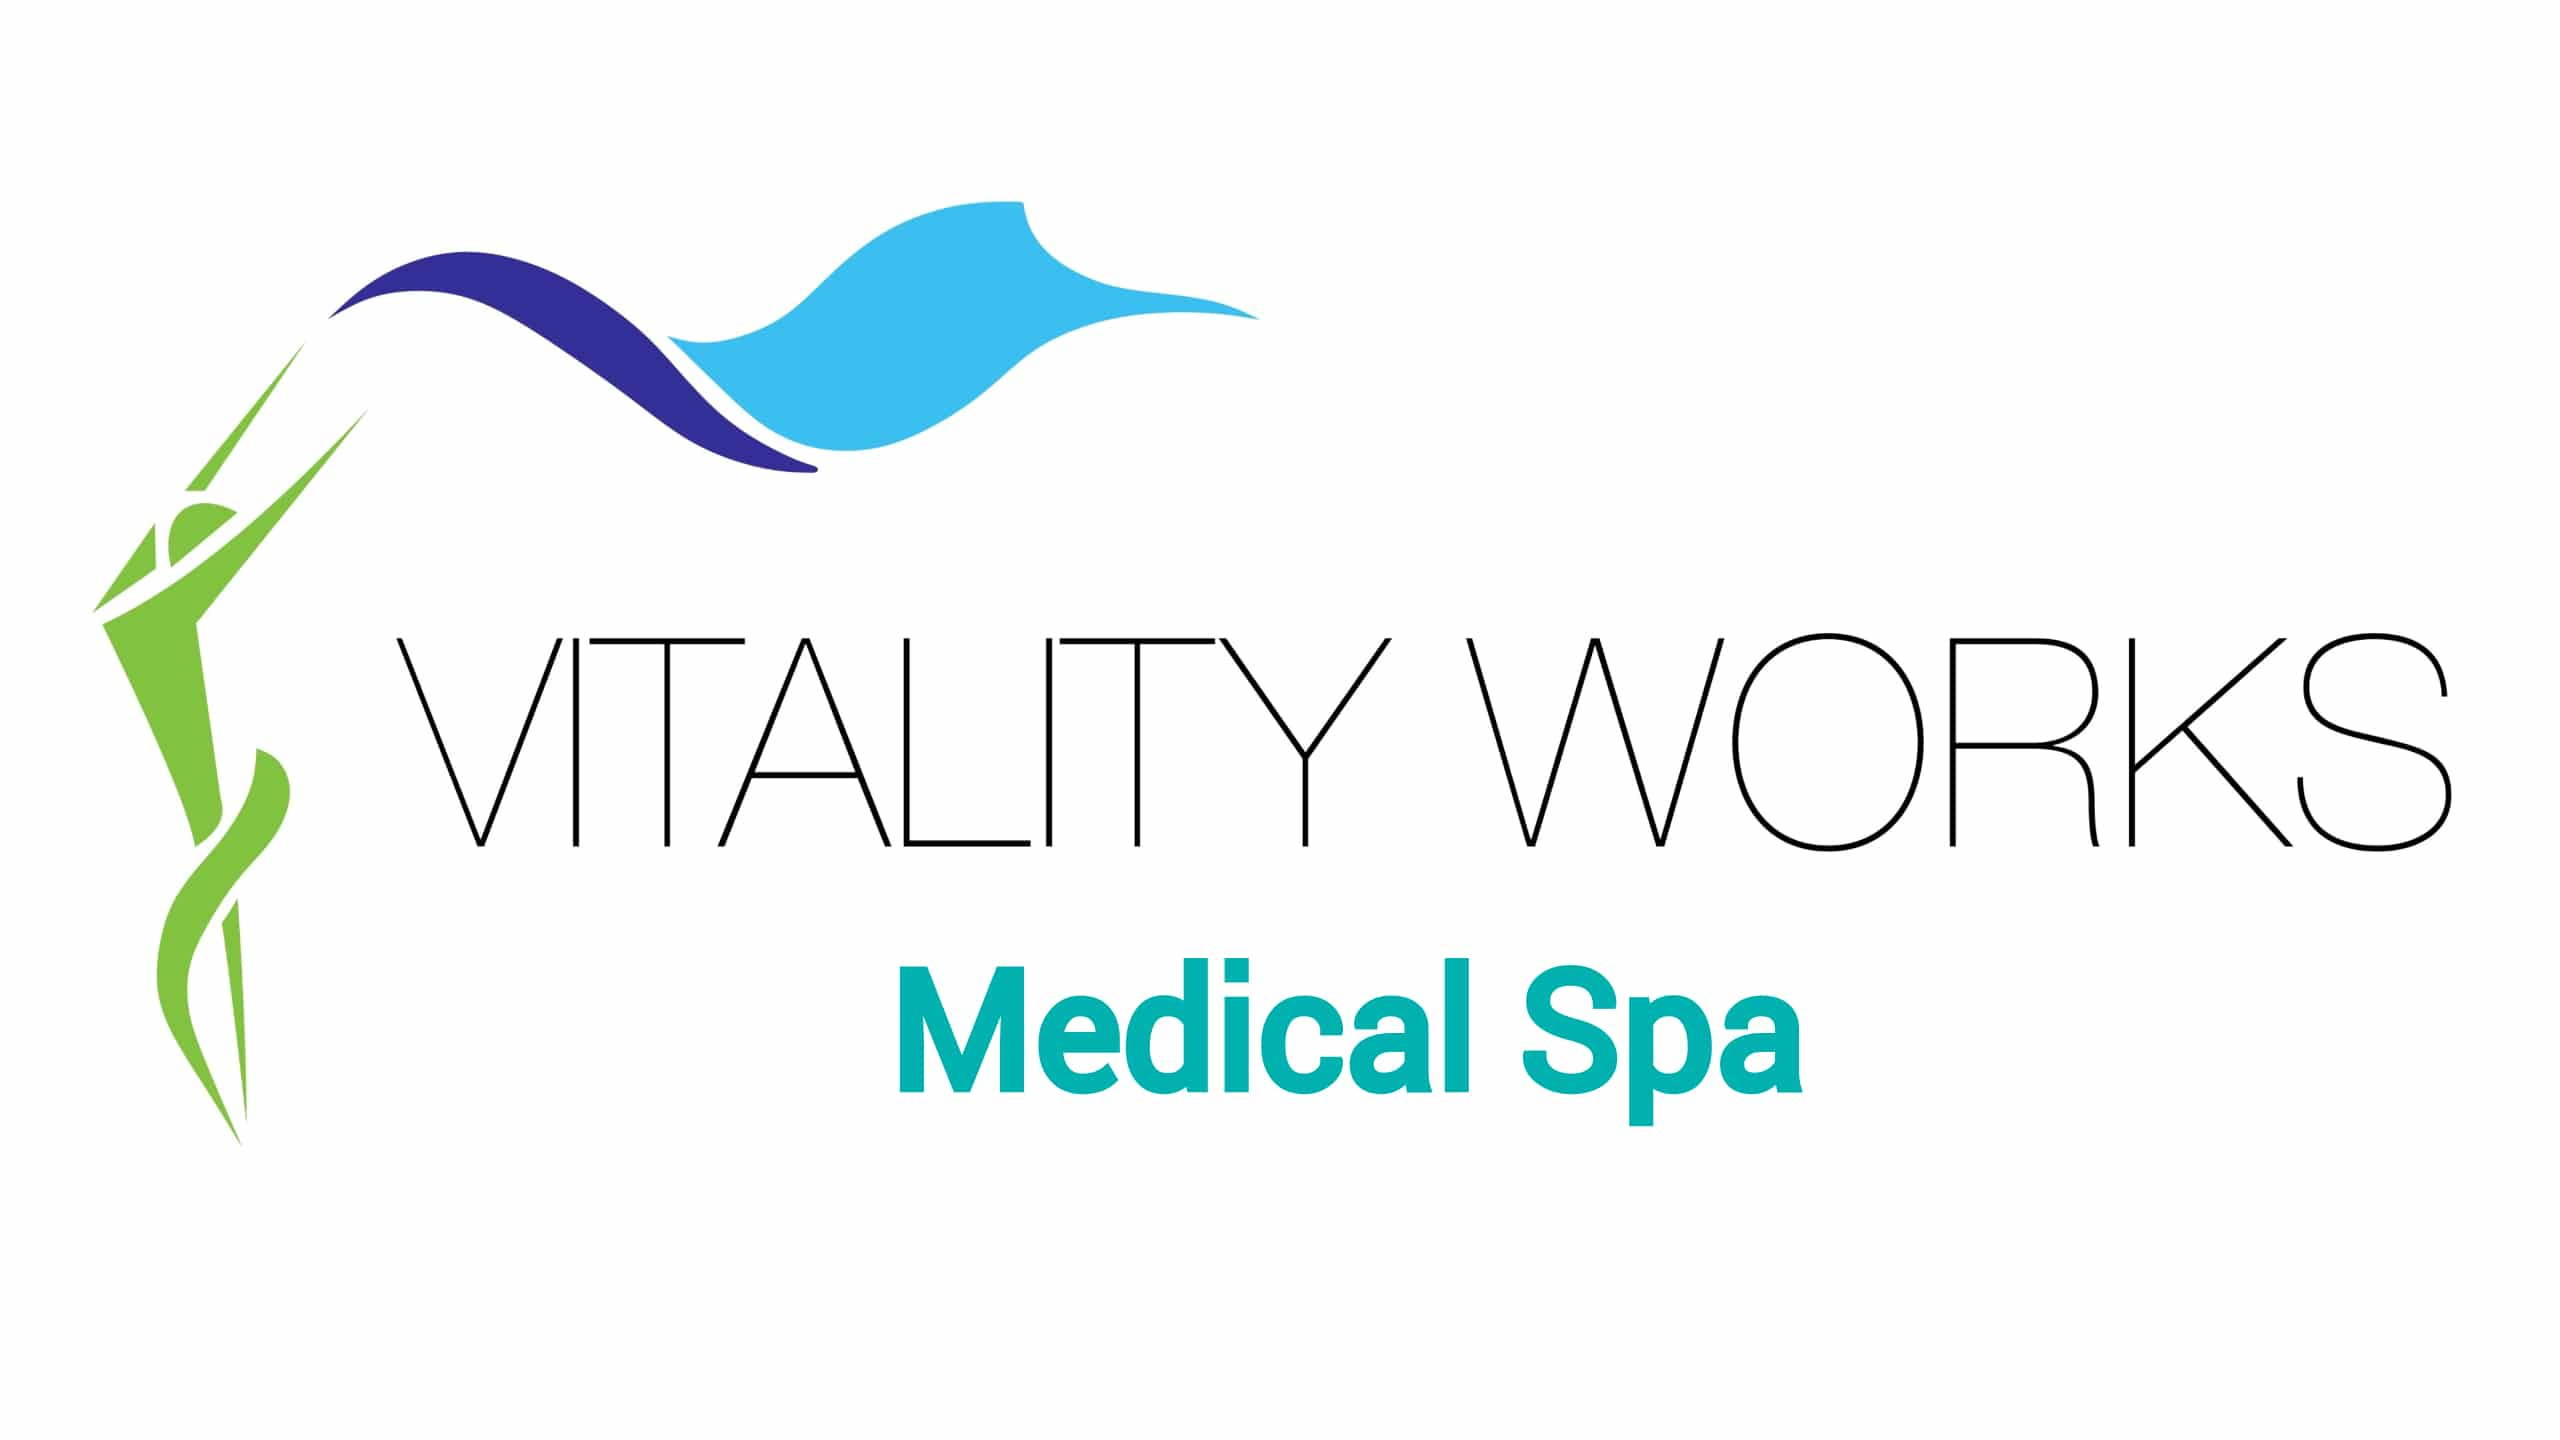 Vitality Works Medical Spa - Toronto & Burlington